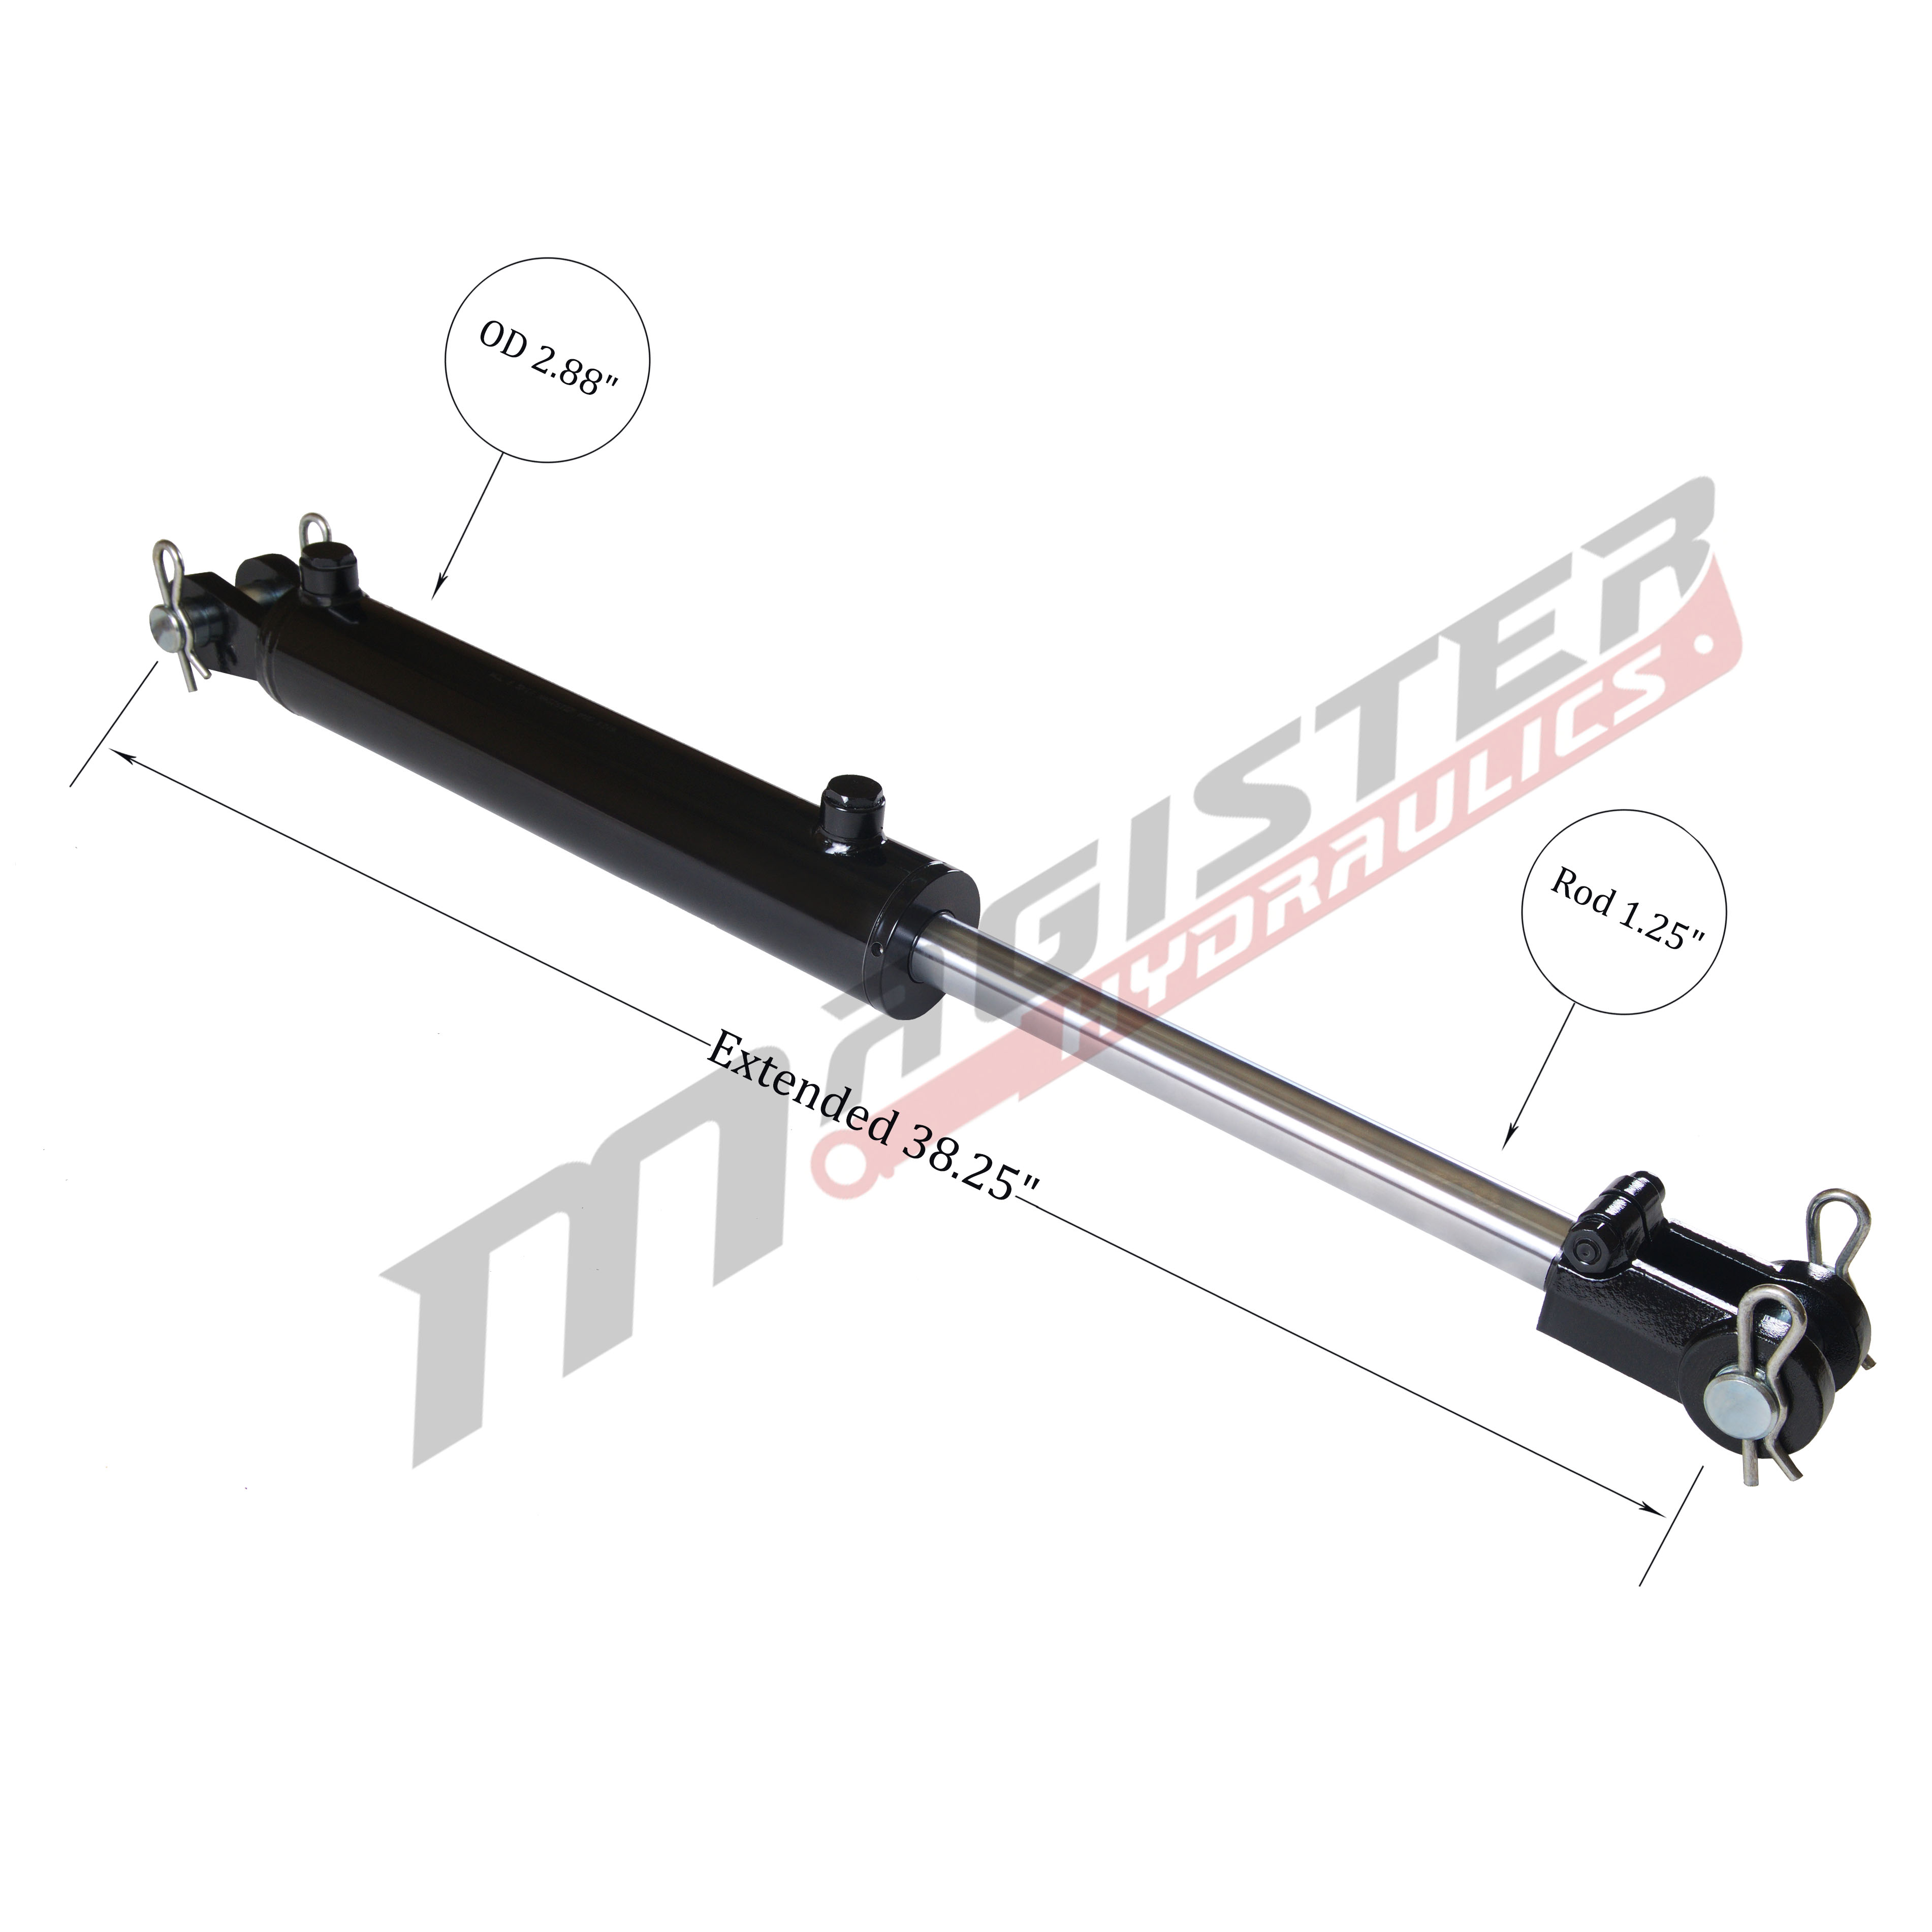 2.5 bore x 14 stroke hydraulic cylinder, welded clevis double acting cylinder | Magister Hydraulics